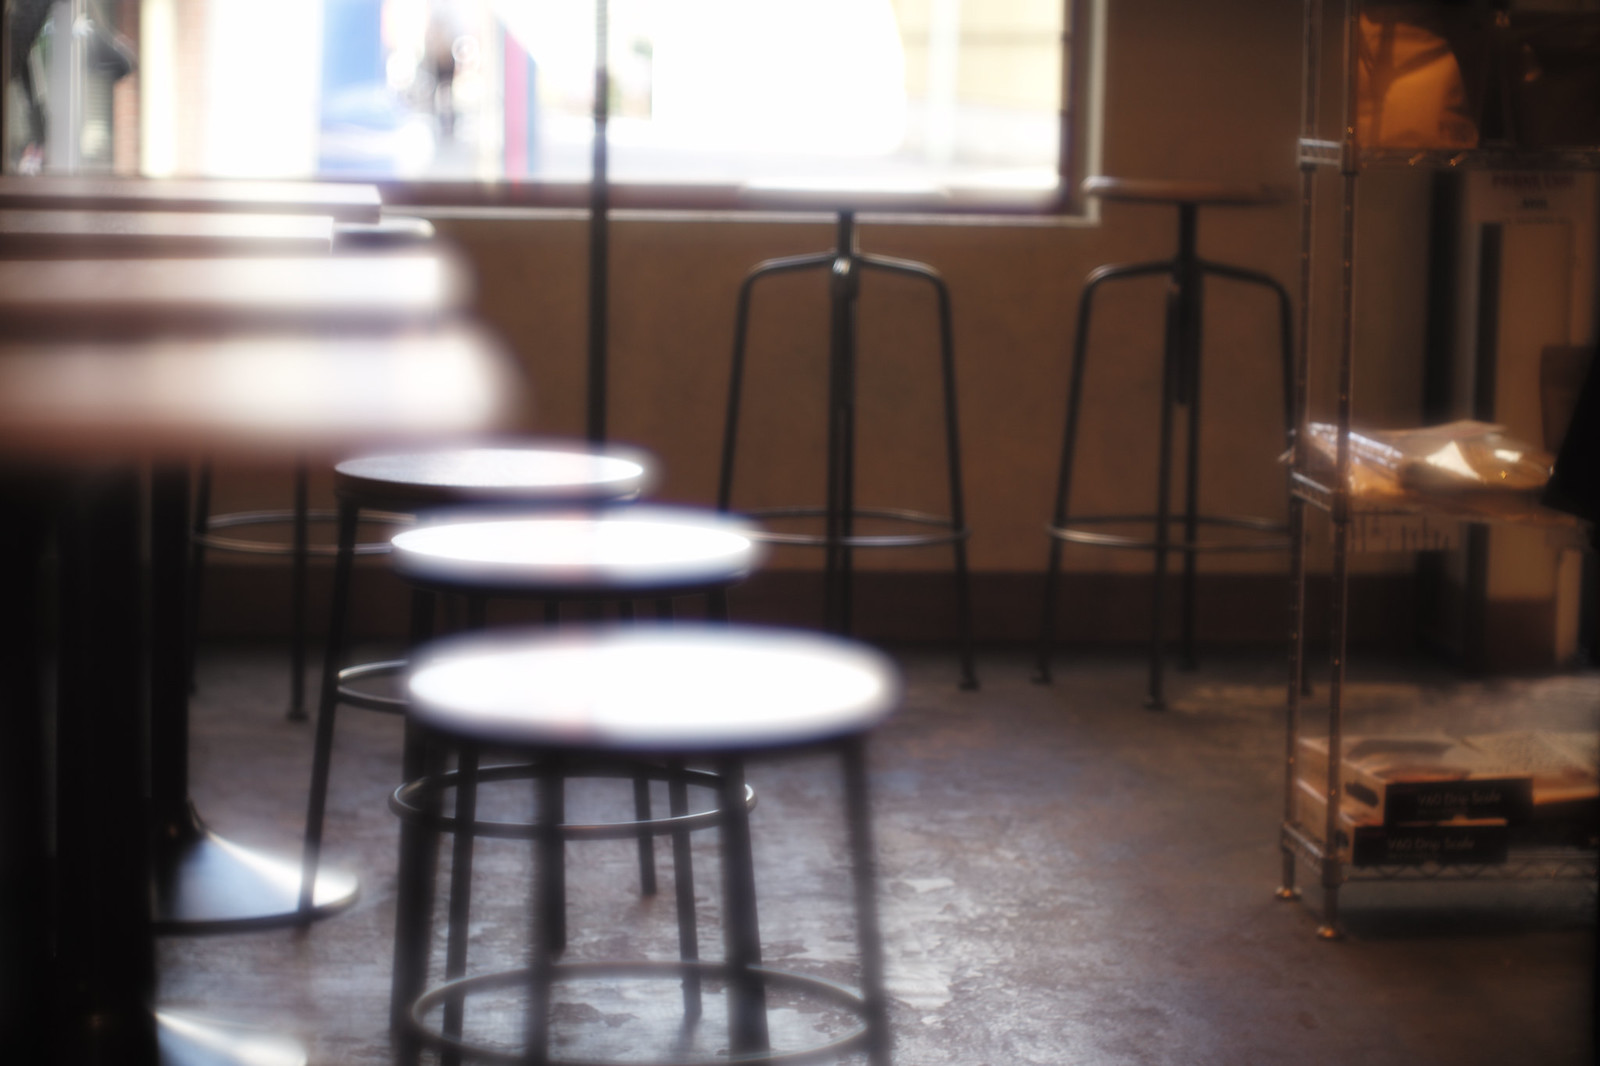 UNISON TAILOR Coffee and Beer